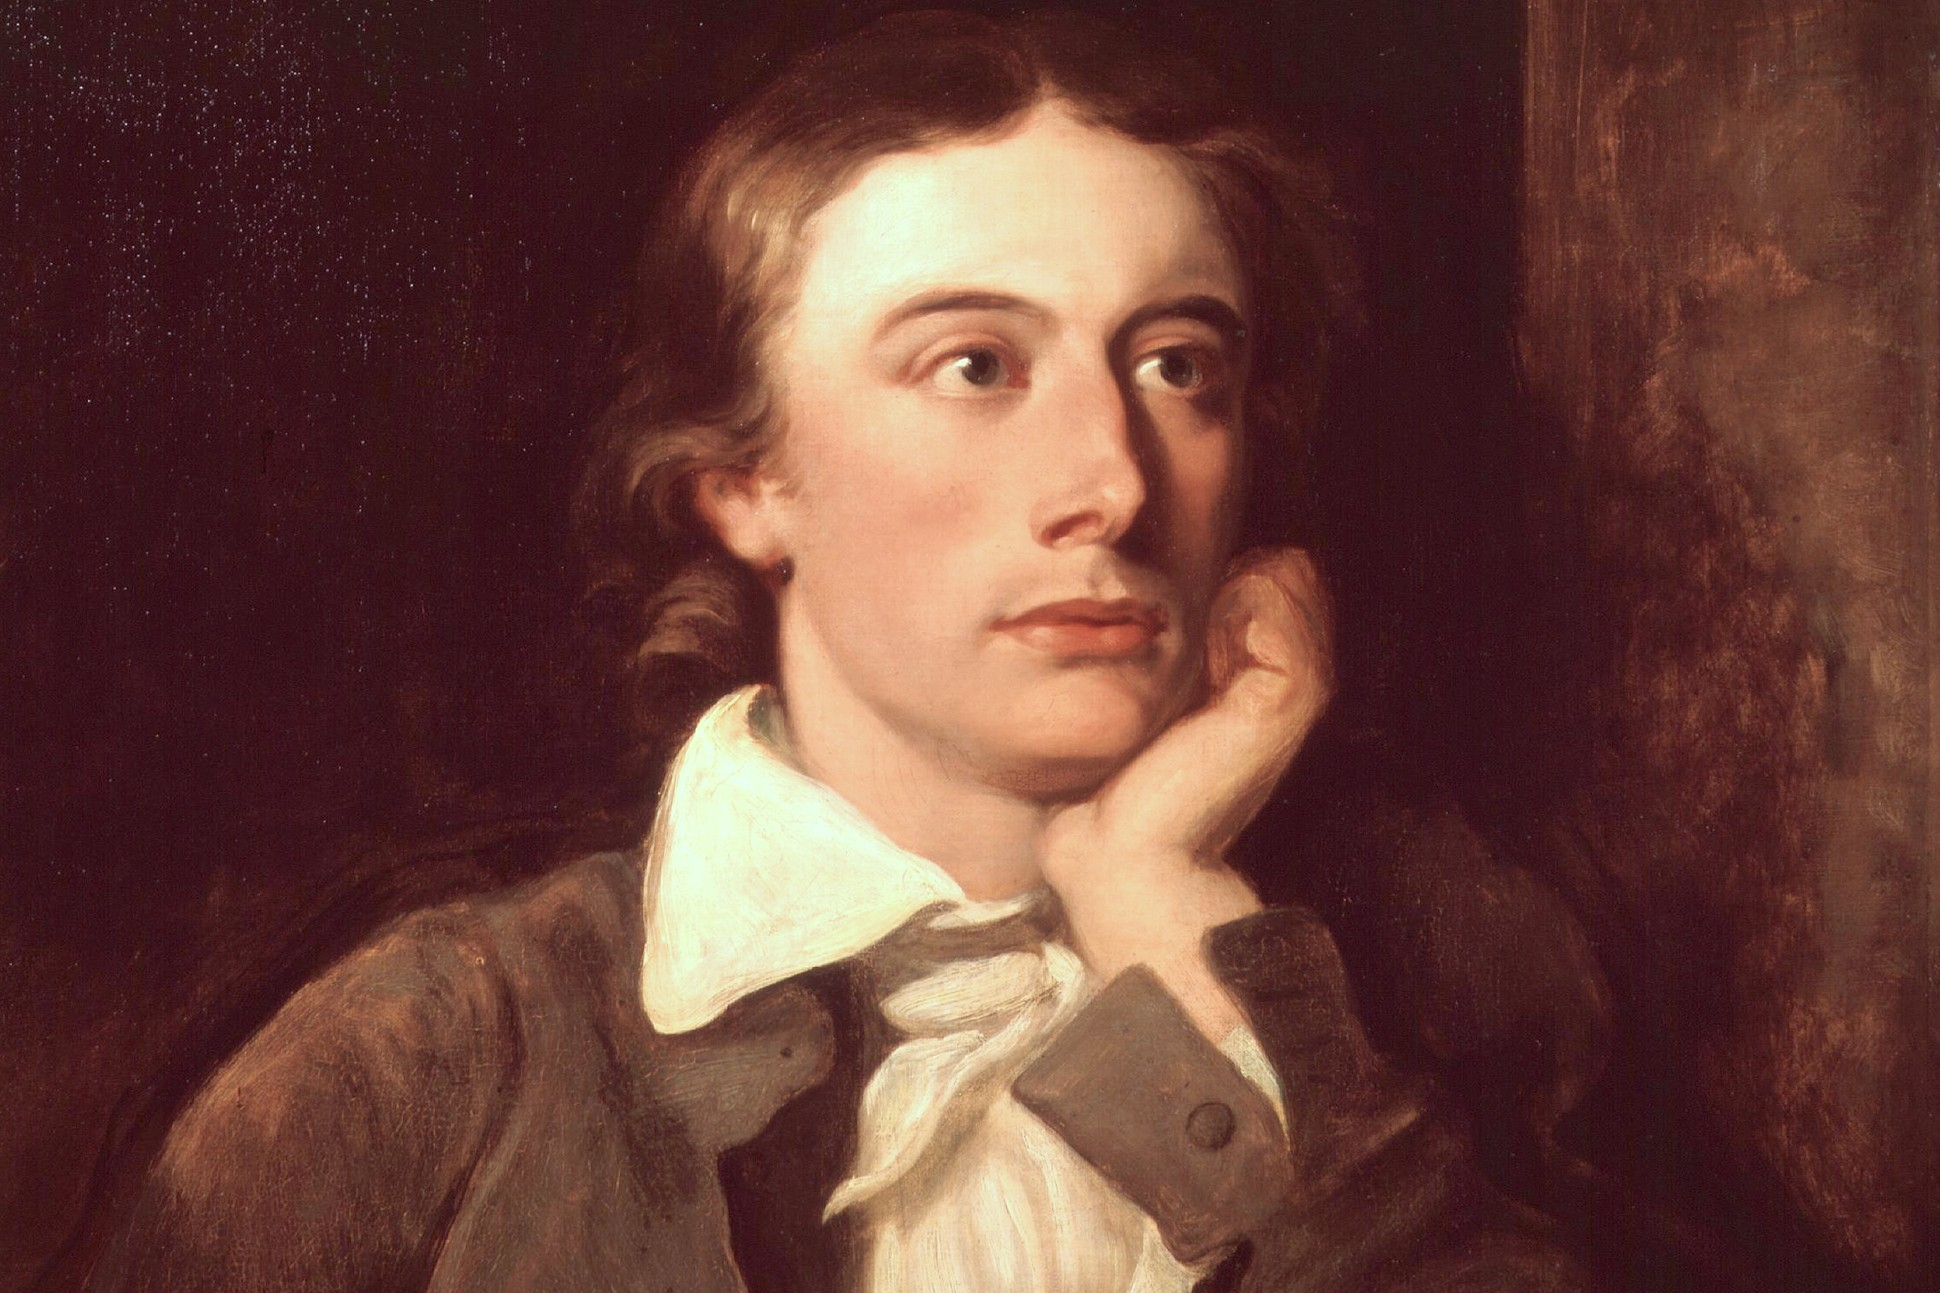 john keats poetry foundation